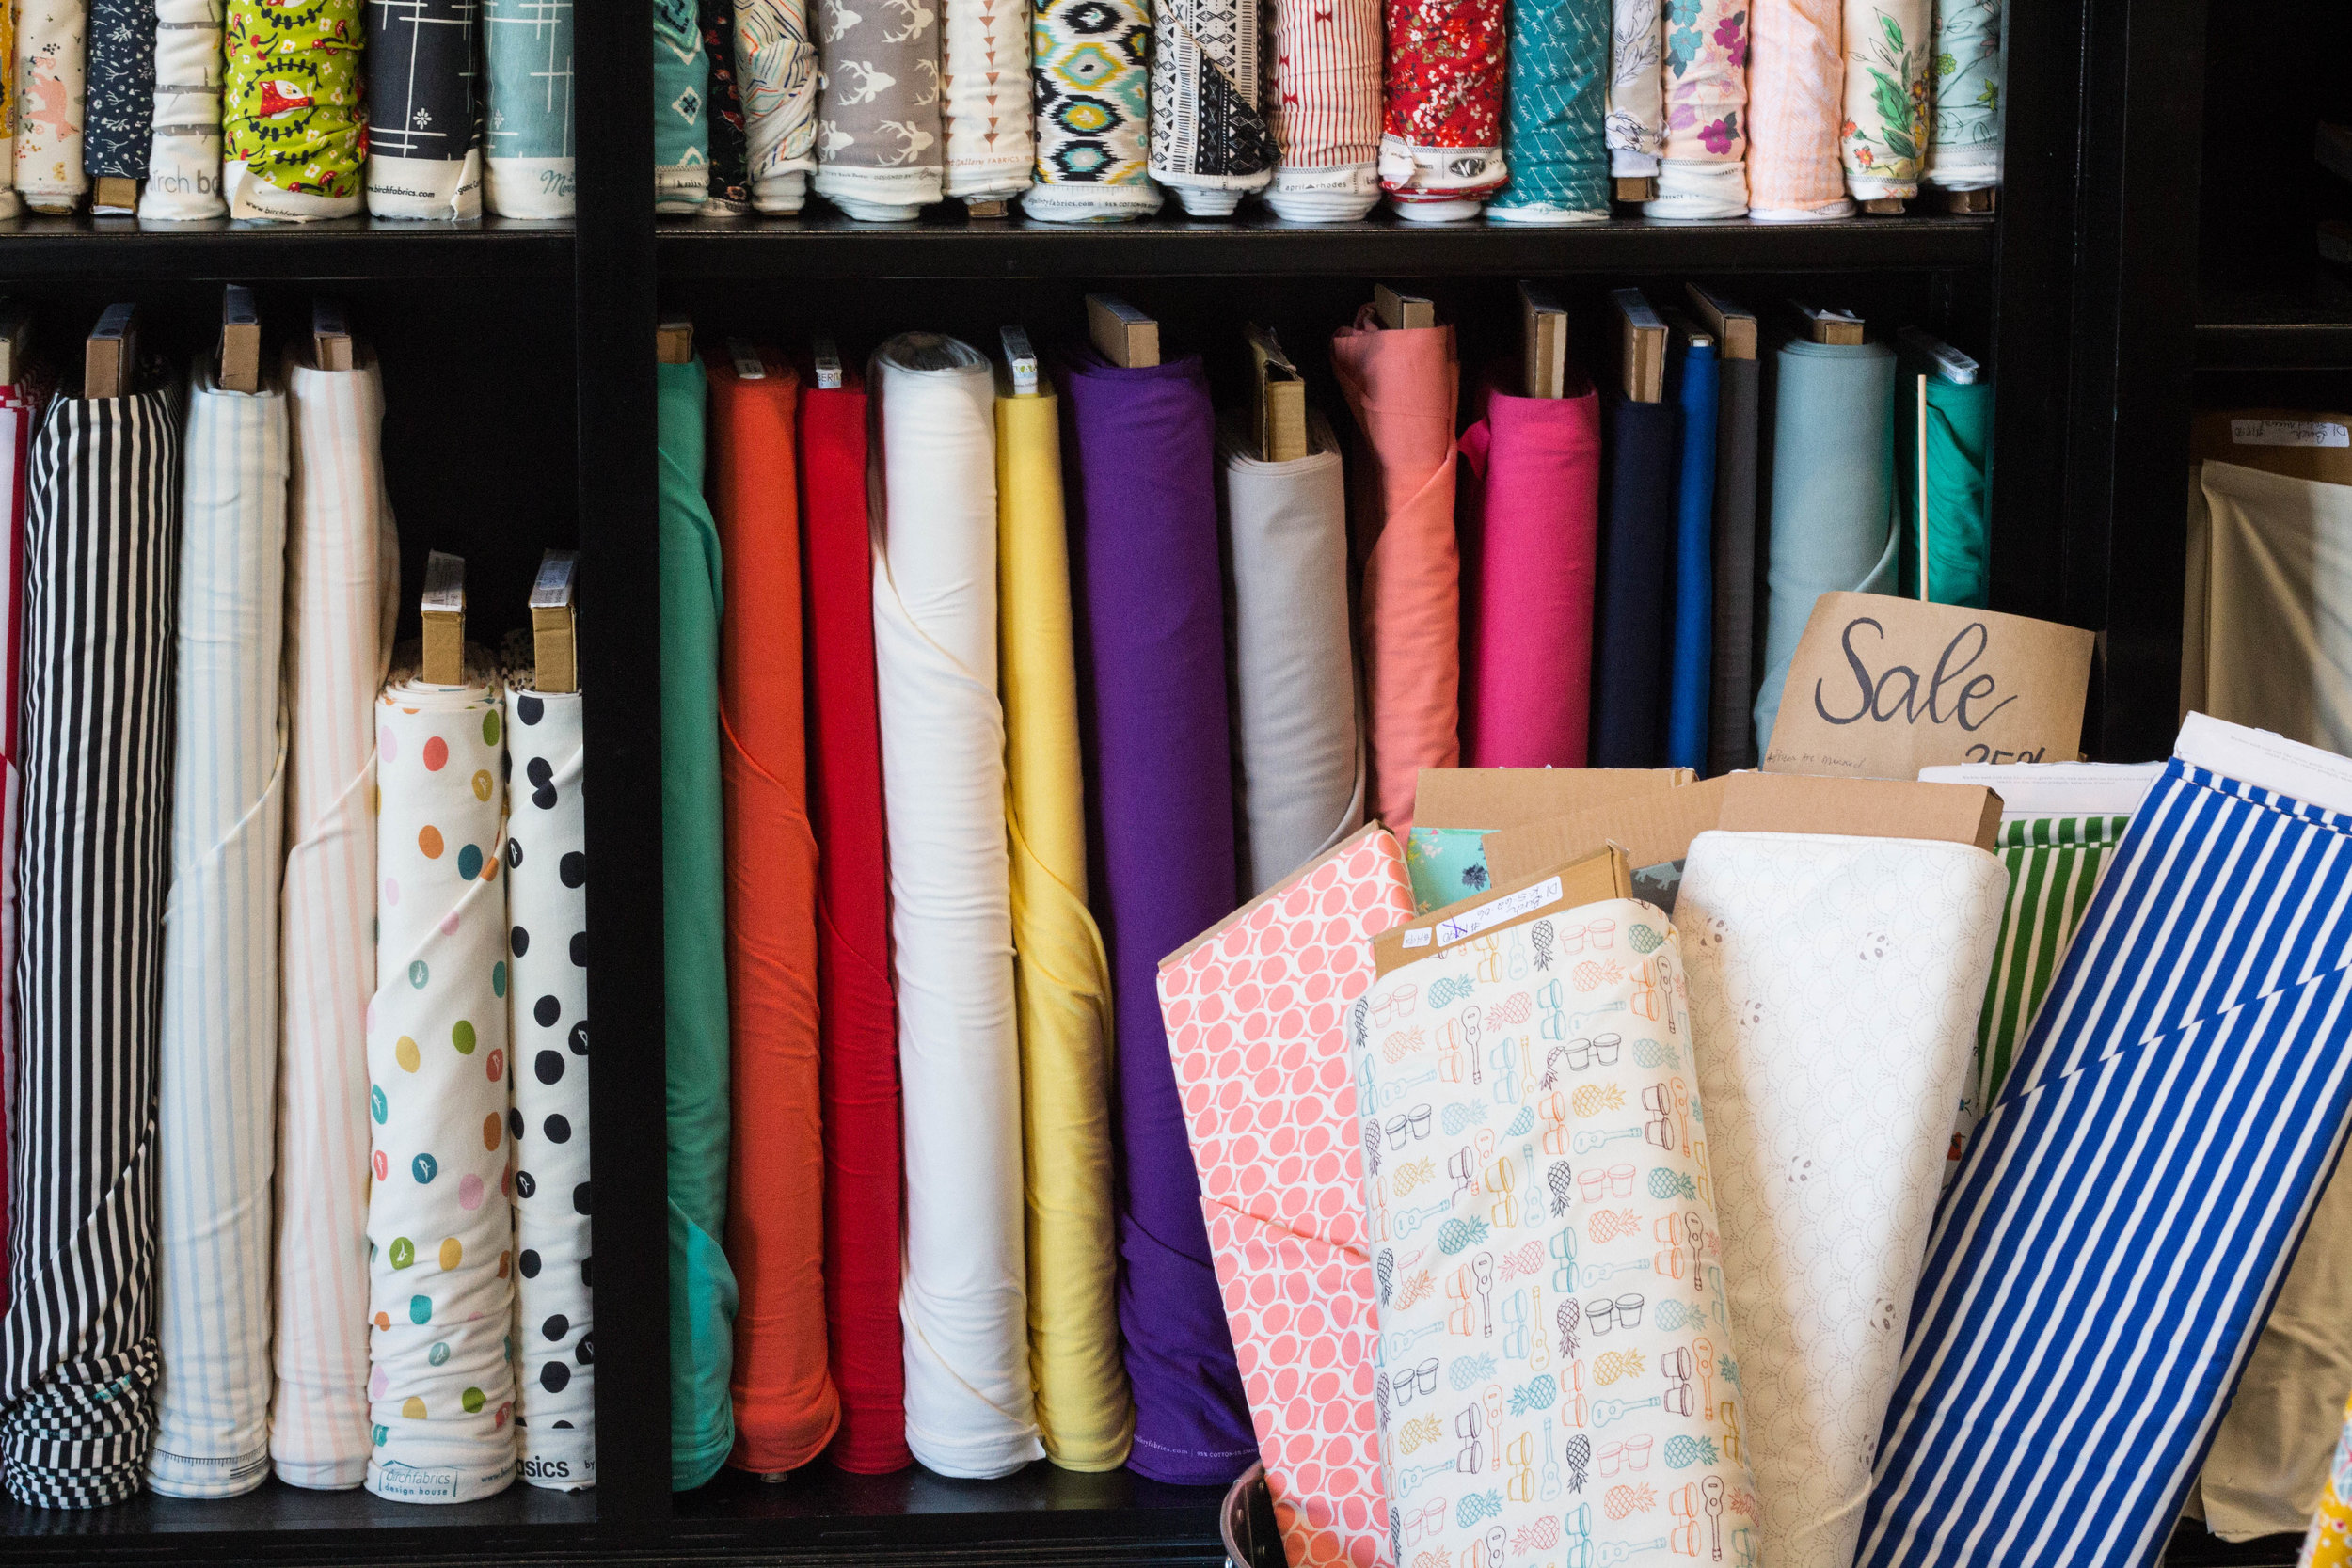 Quilting - We specialize in fabrics, patterns, and notions for modern quilting. We stock fabric from Art Gallery, Cotton + Steel, Moda, Free Spirit, Riley Blake, Robert Kaufman, and more. We have a large selection of quilting patterns, rulers, and specialty notions to make quilting easy and fun. We are proud to sell AccuQuilt cutting machines and dies and we encourage you to come in the shop and try one out before you buy! We offer a range of traditional and modern quilting classes, from introductory quilting to advanced techniques.